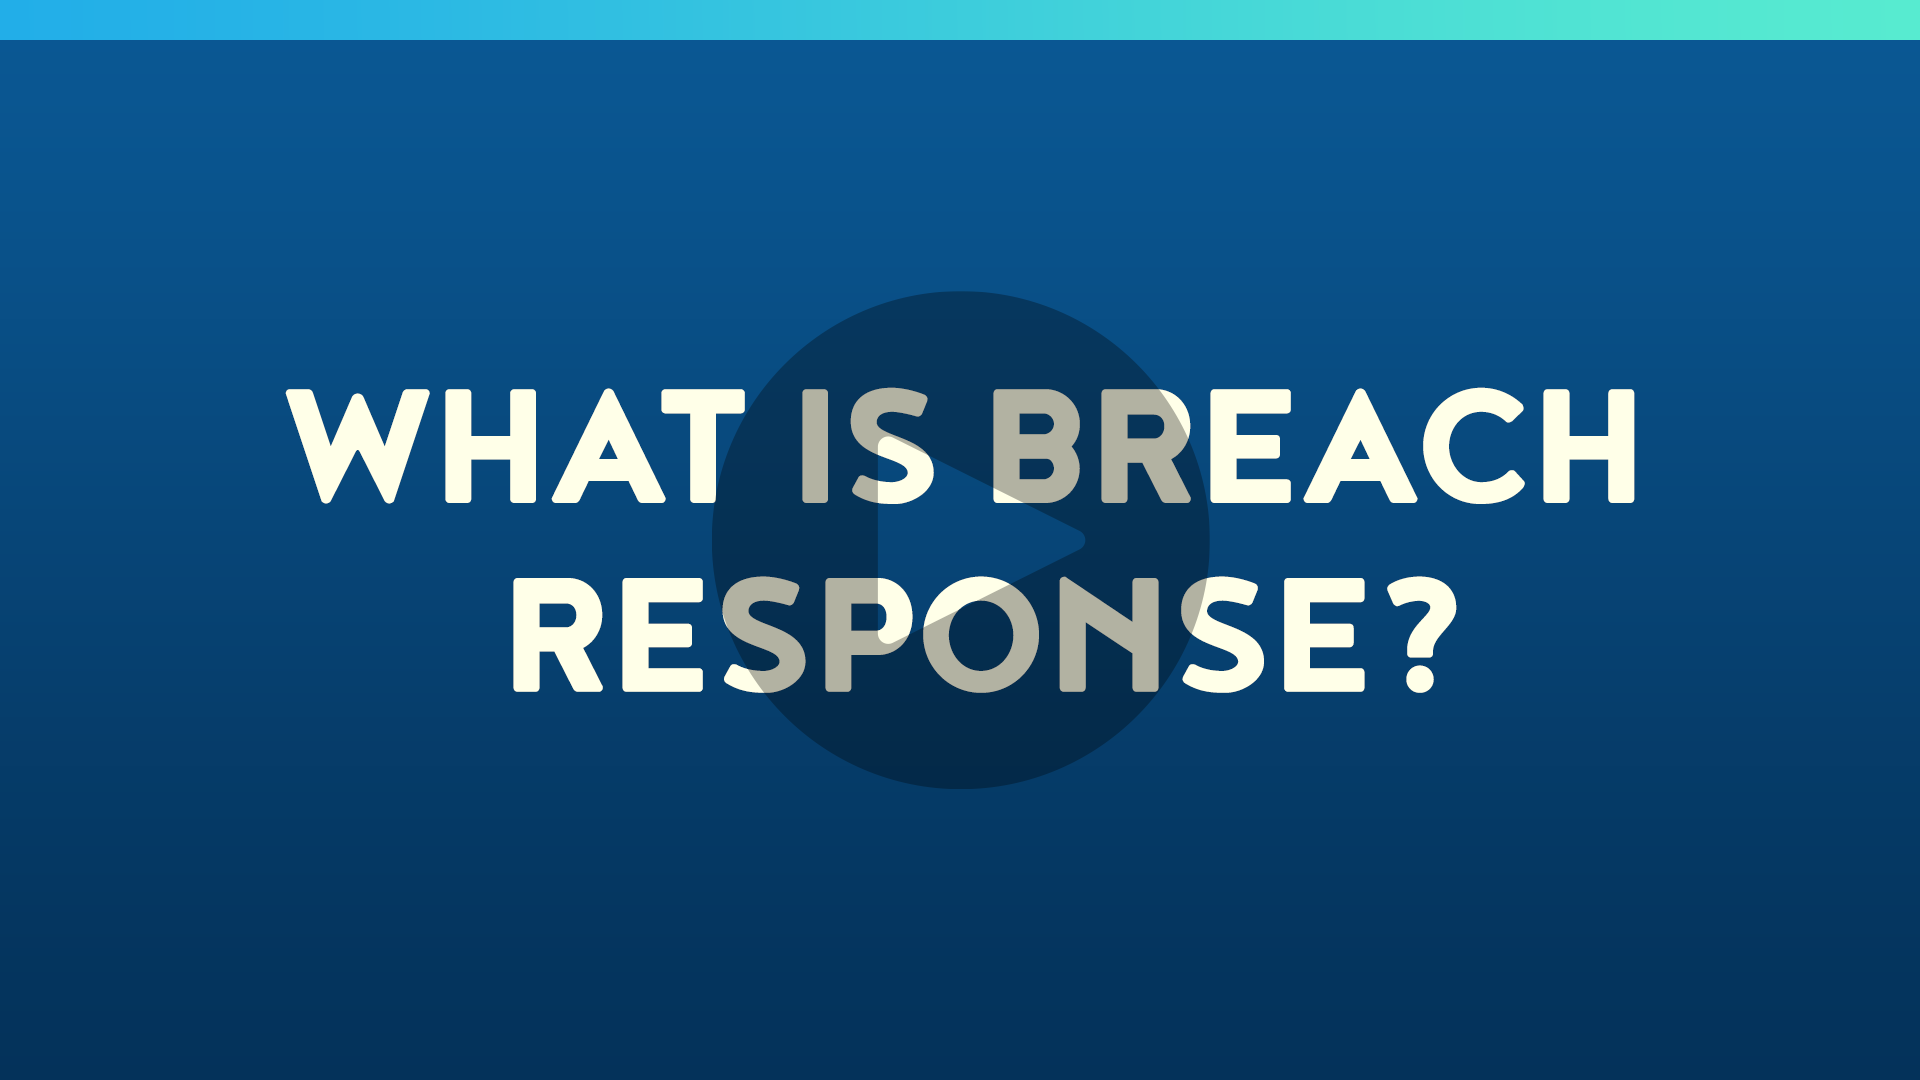 What is Breach Response